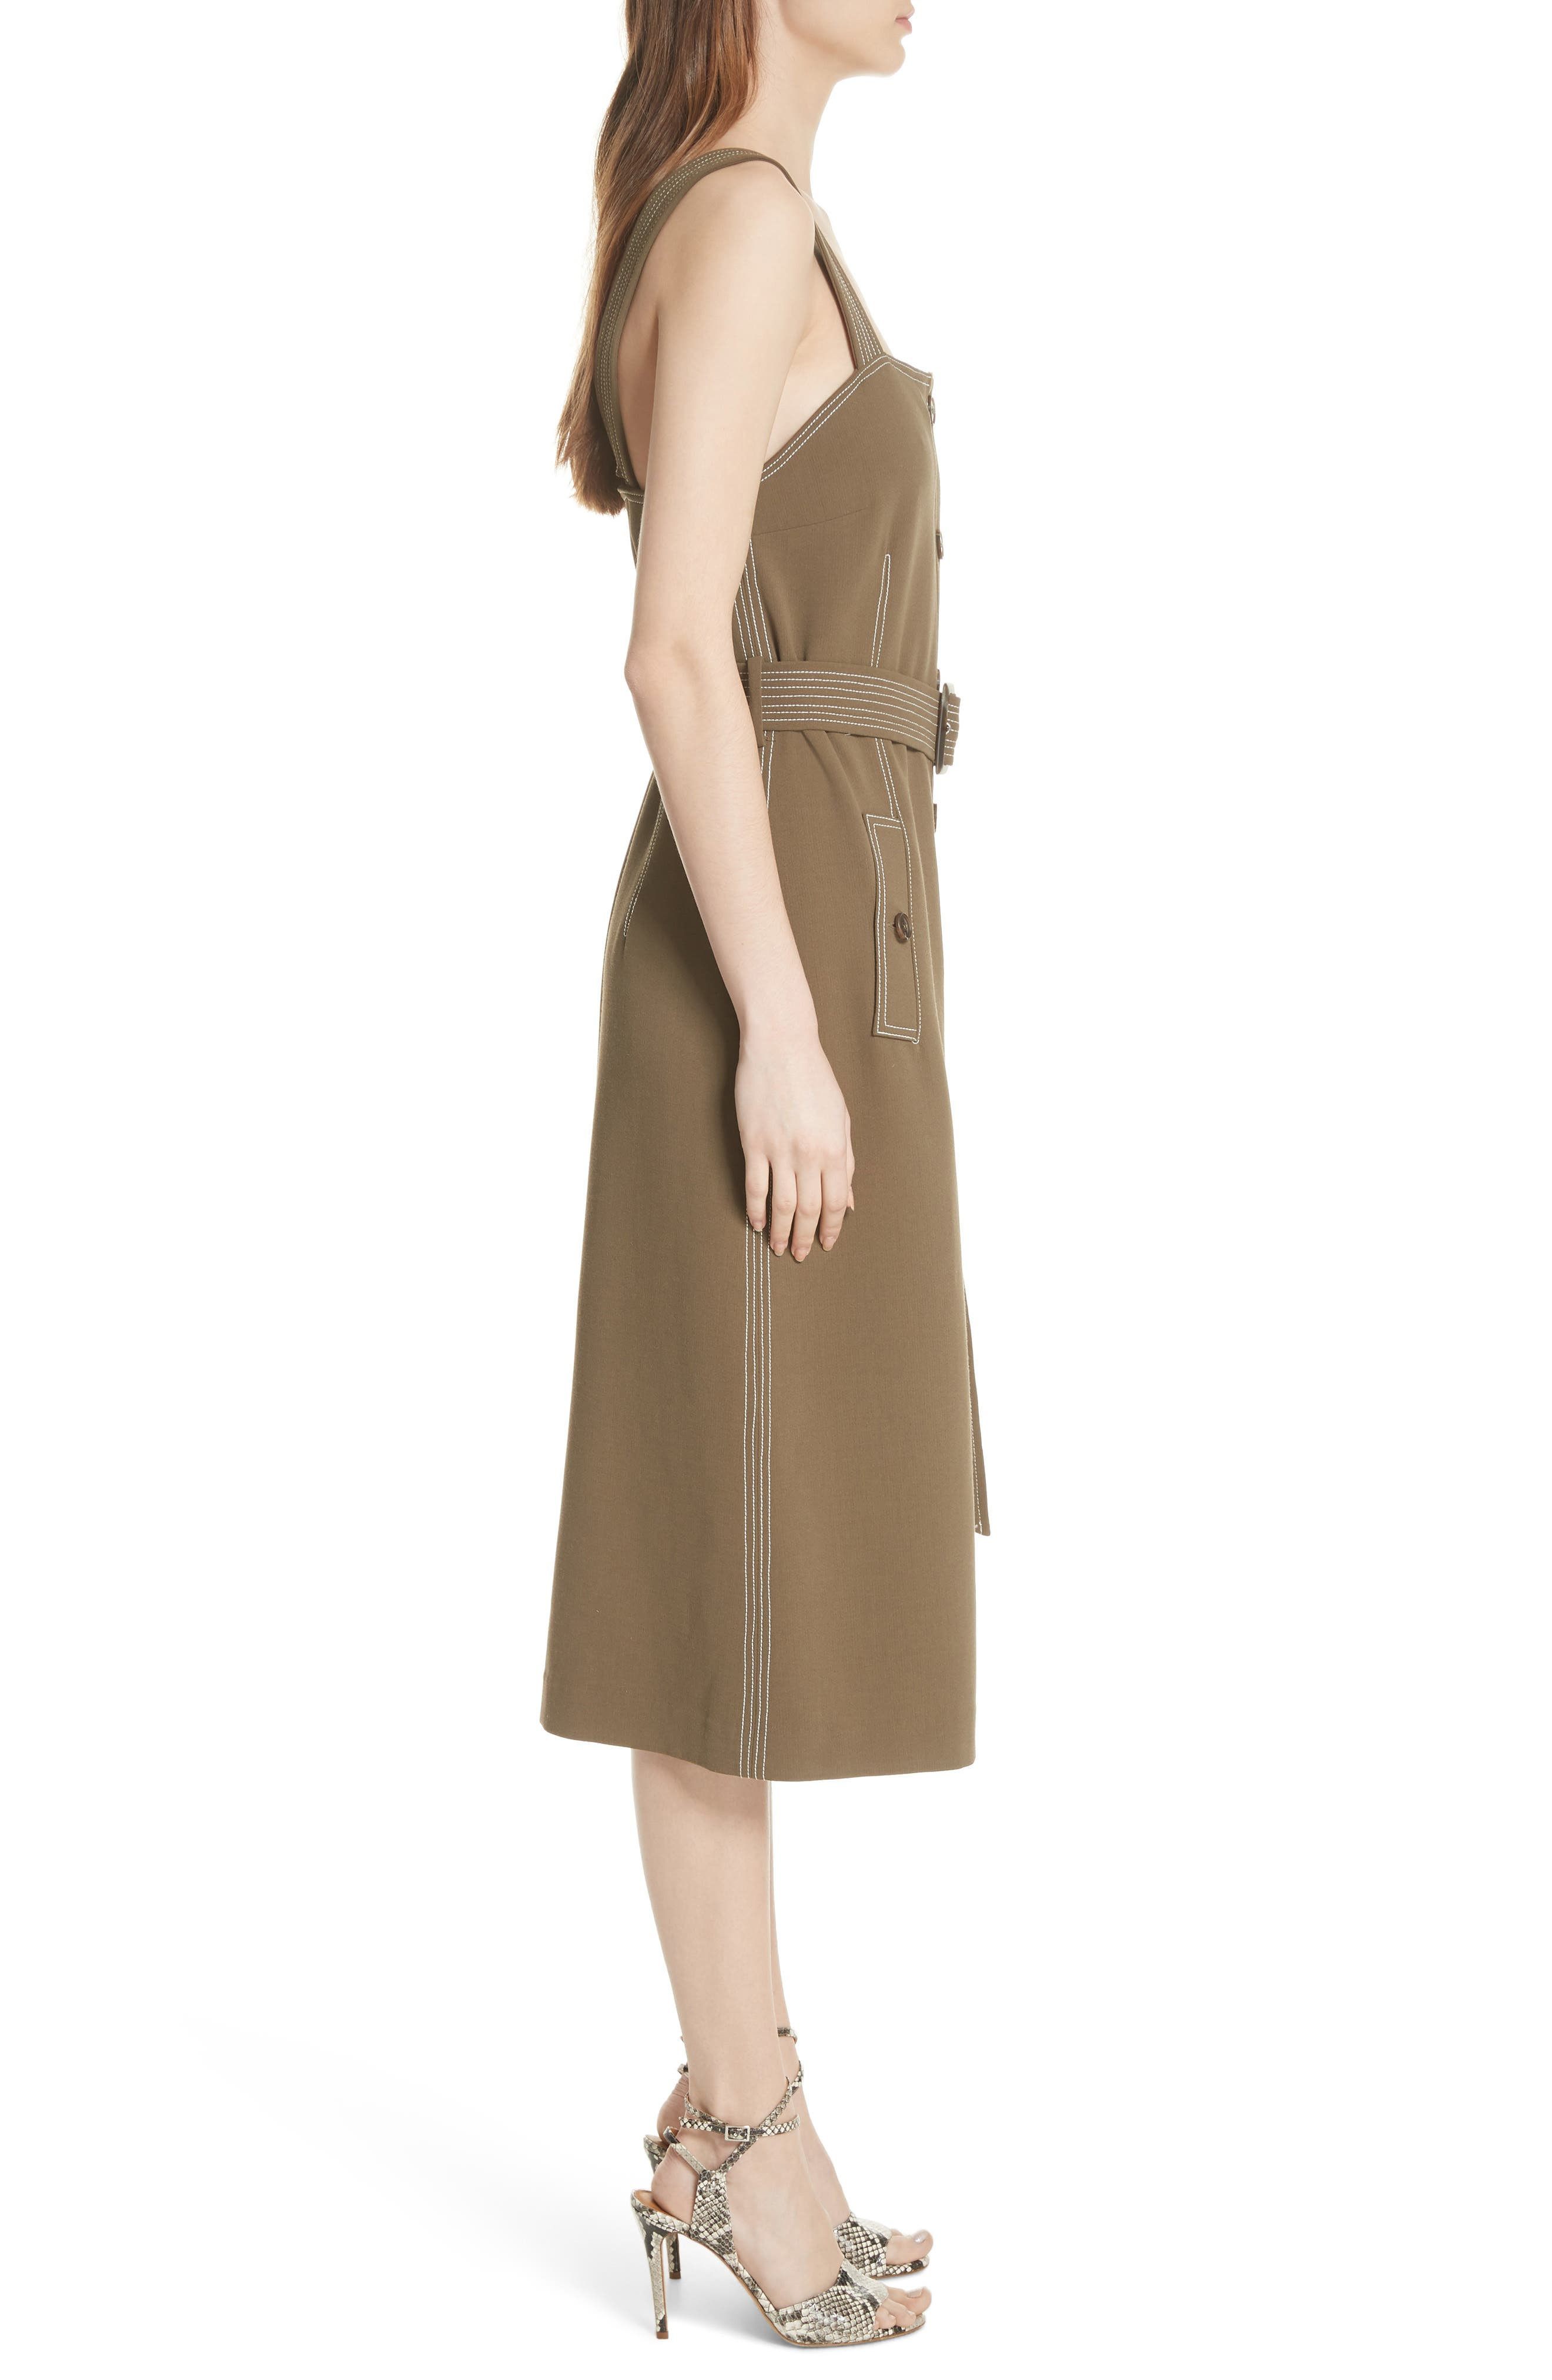 Adora Belted Dress,                             Alternate thumbnail 3, color,                             ARMY GREEN